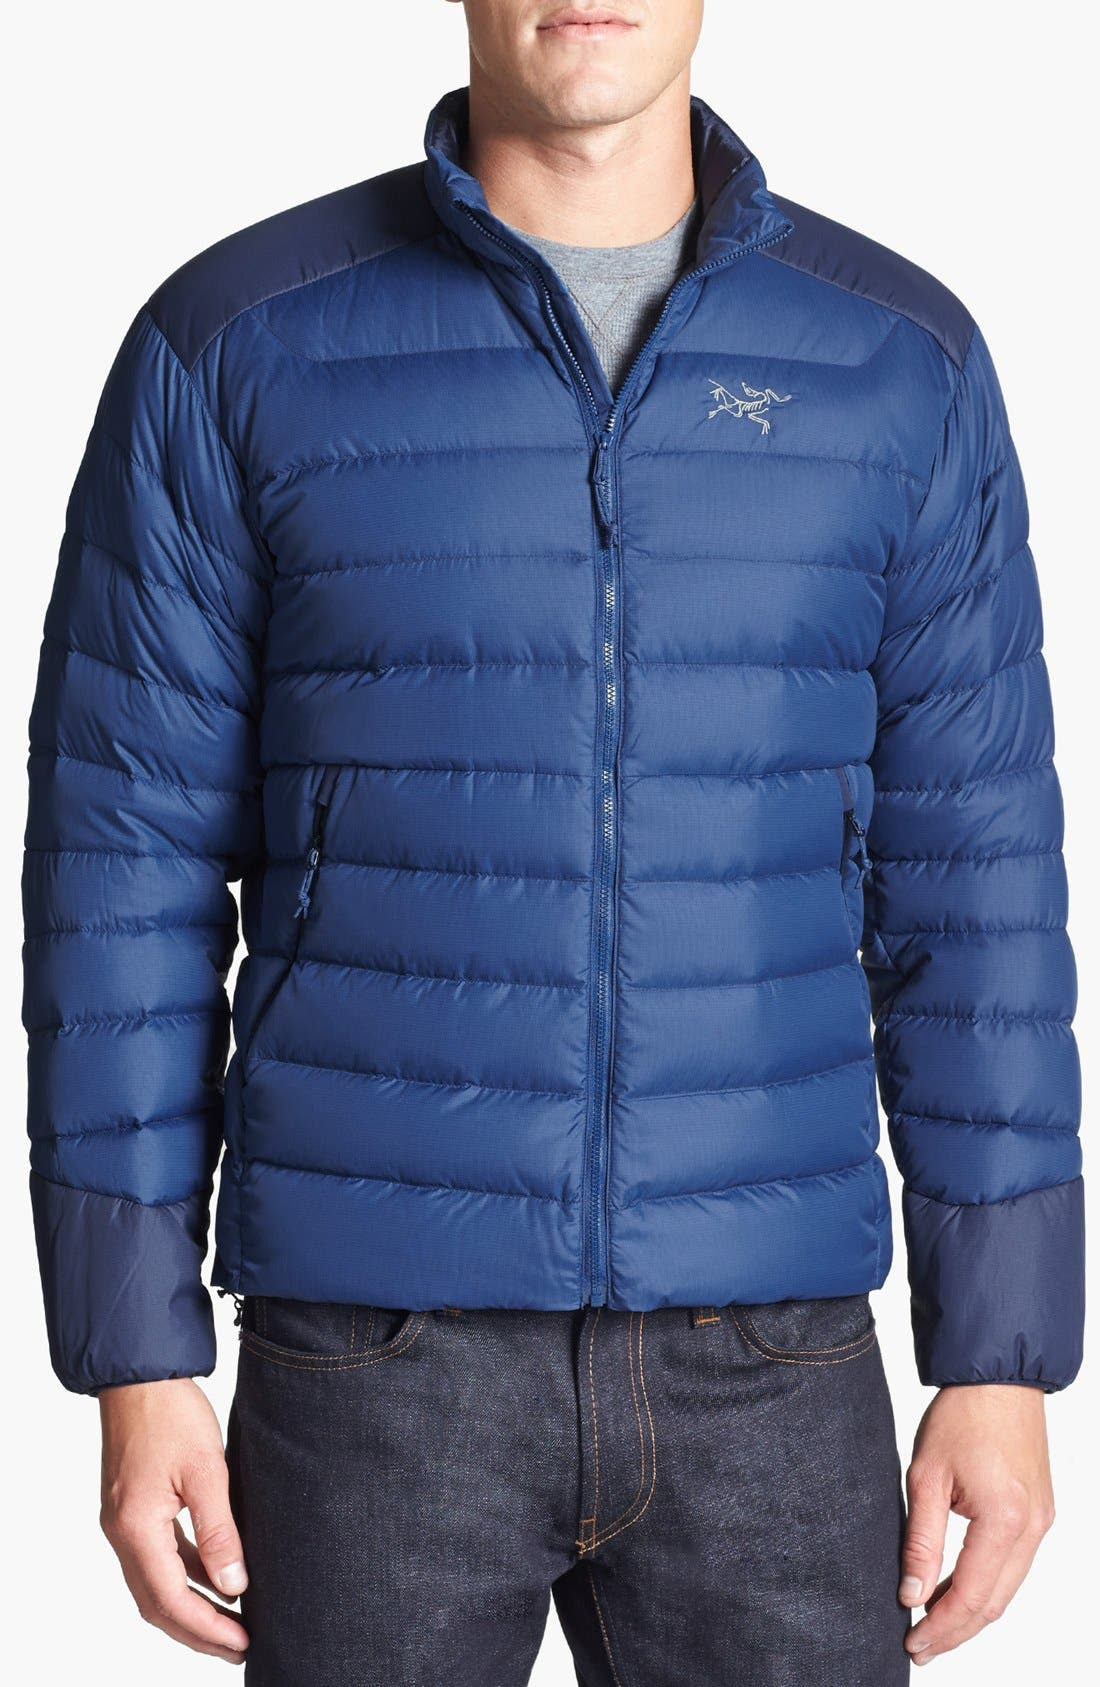 Alternate Image 1 Selected - Arc'teryx 'Thorium AR' Athletic Fit Down Jacket